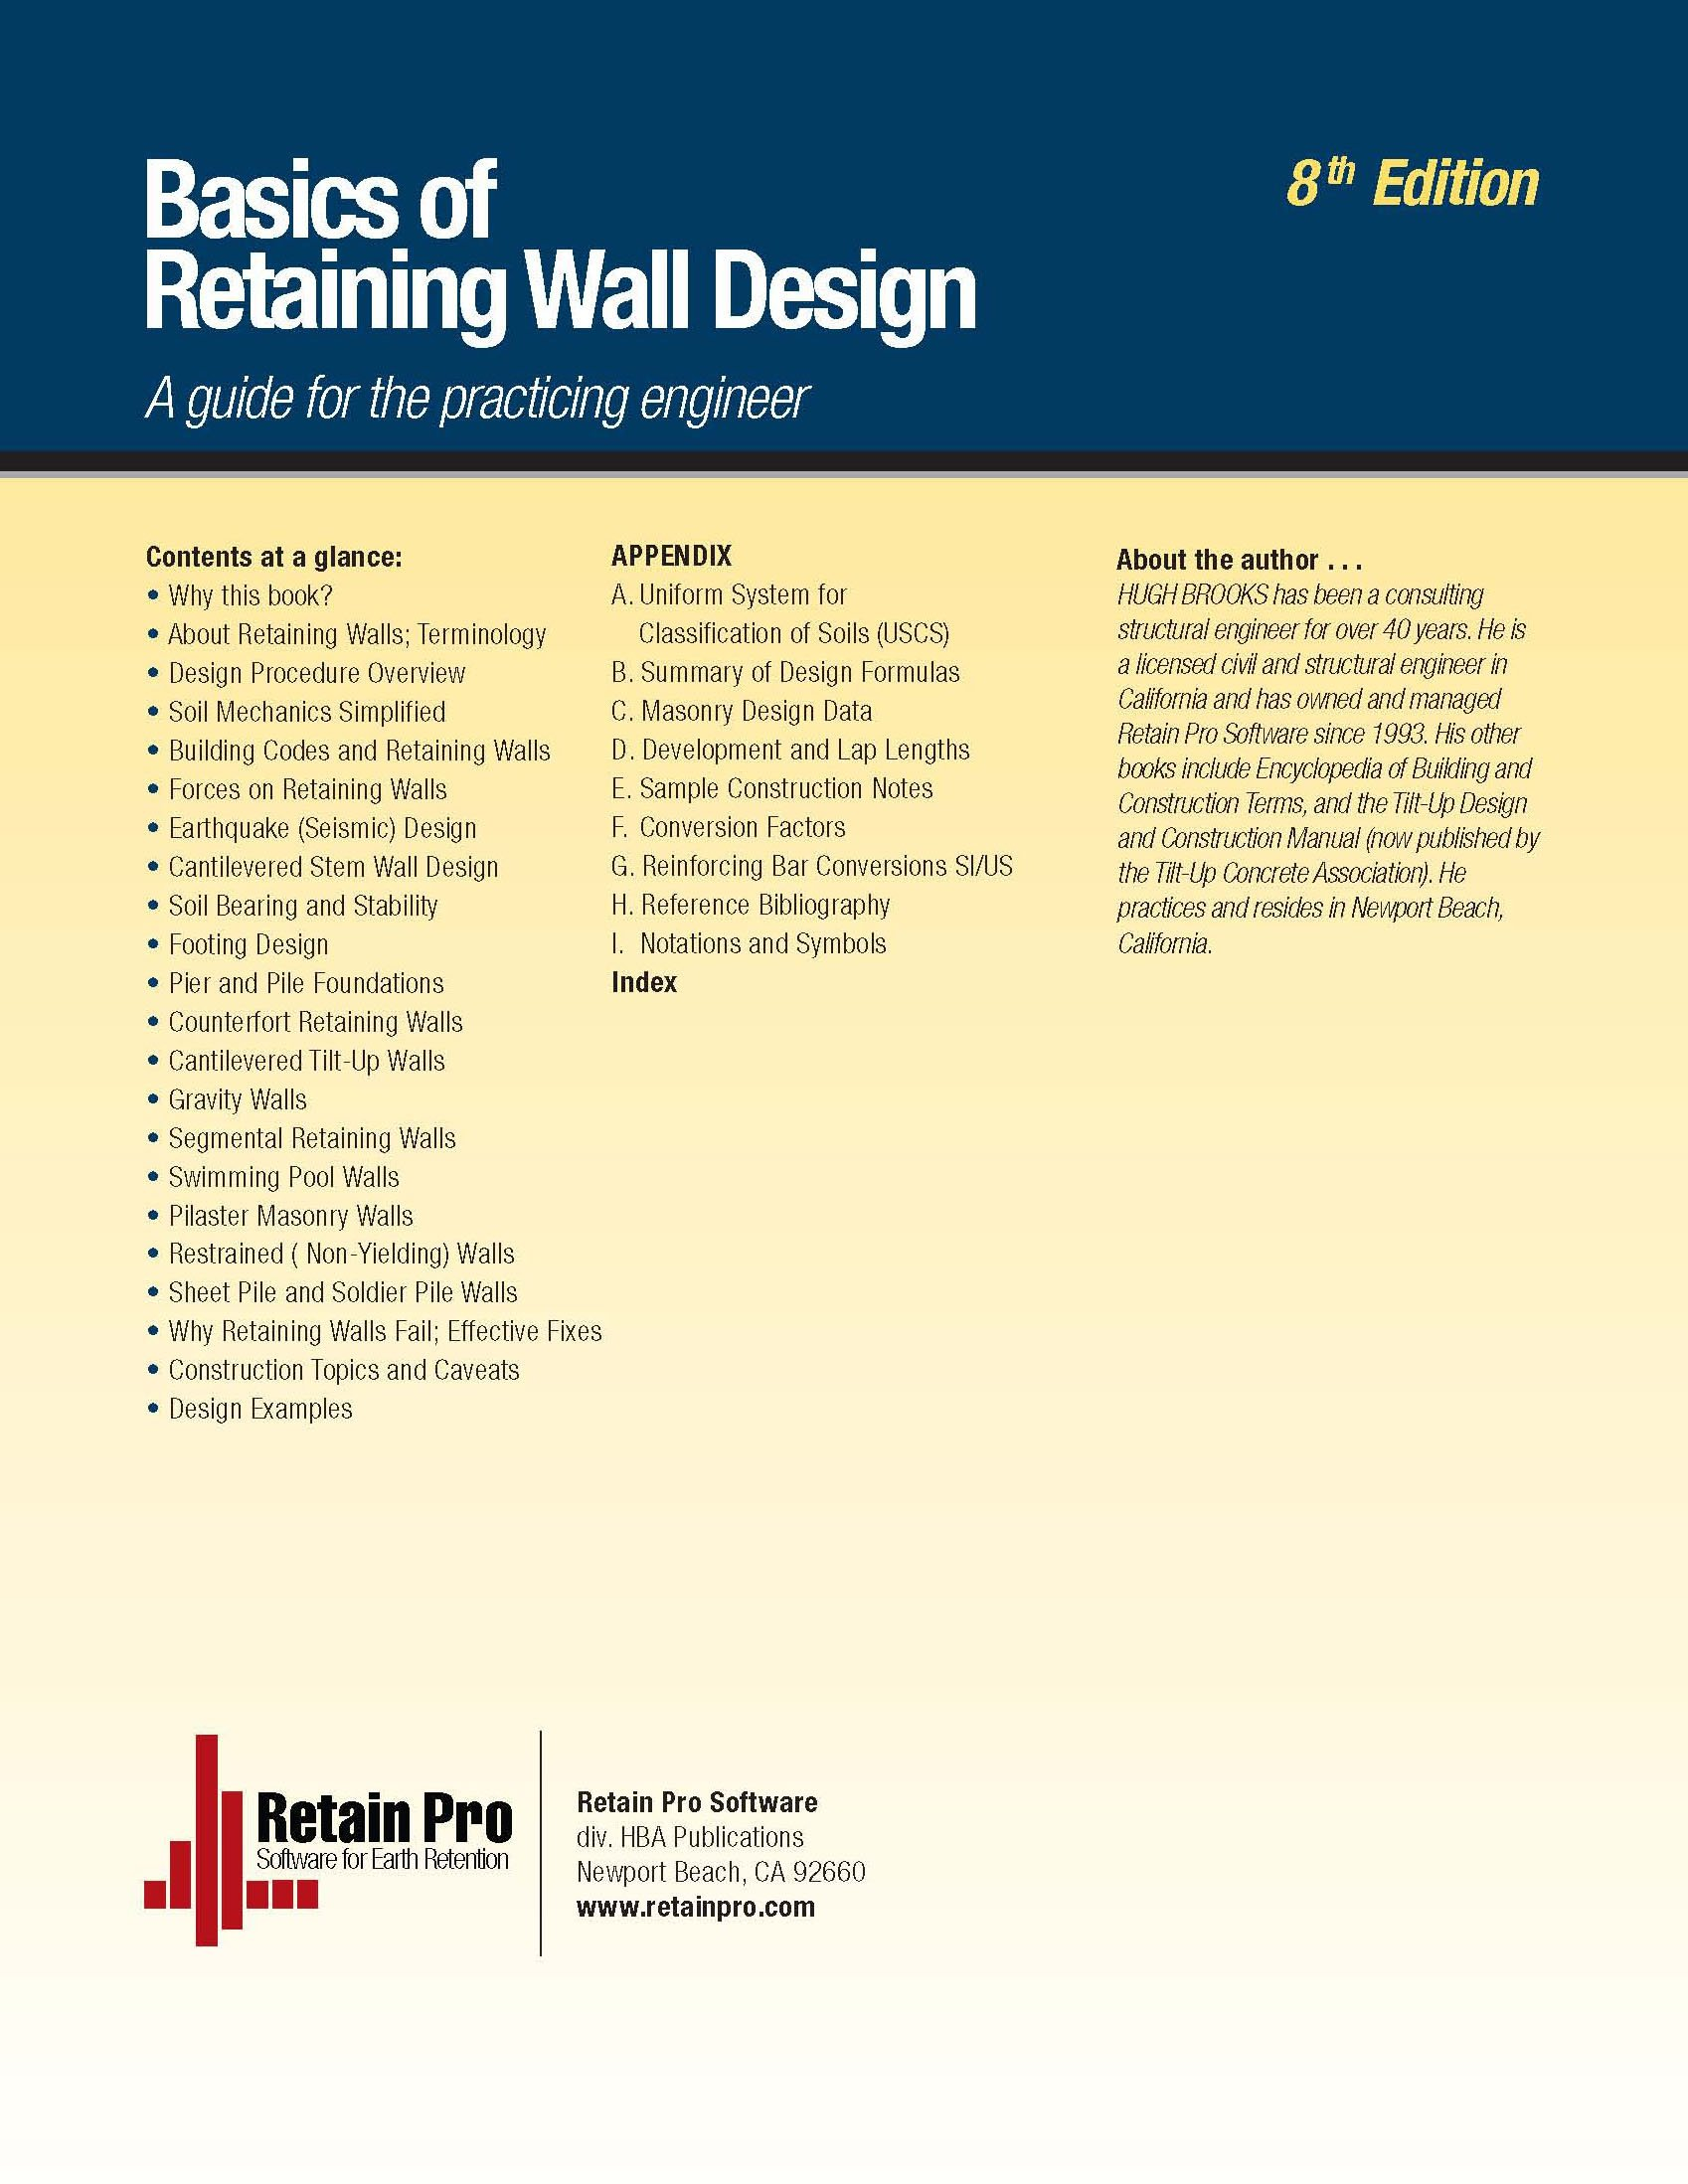 Basics of Retaining Wall Design 8th Edition Hugh Brooks